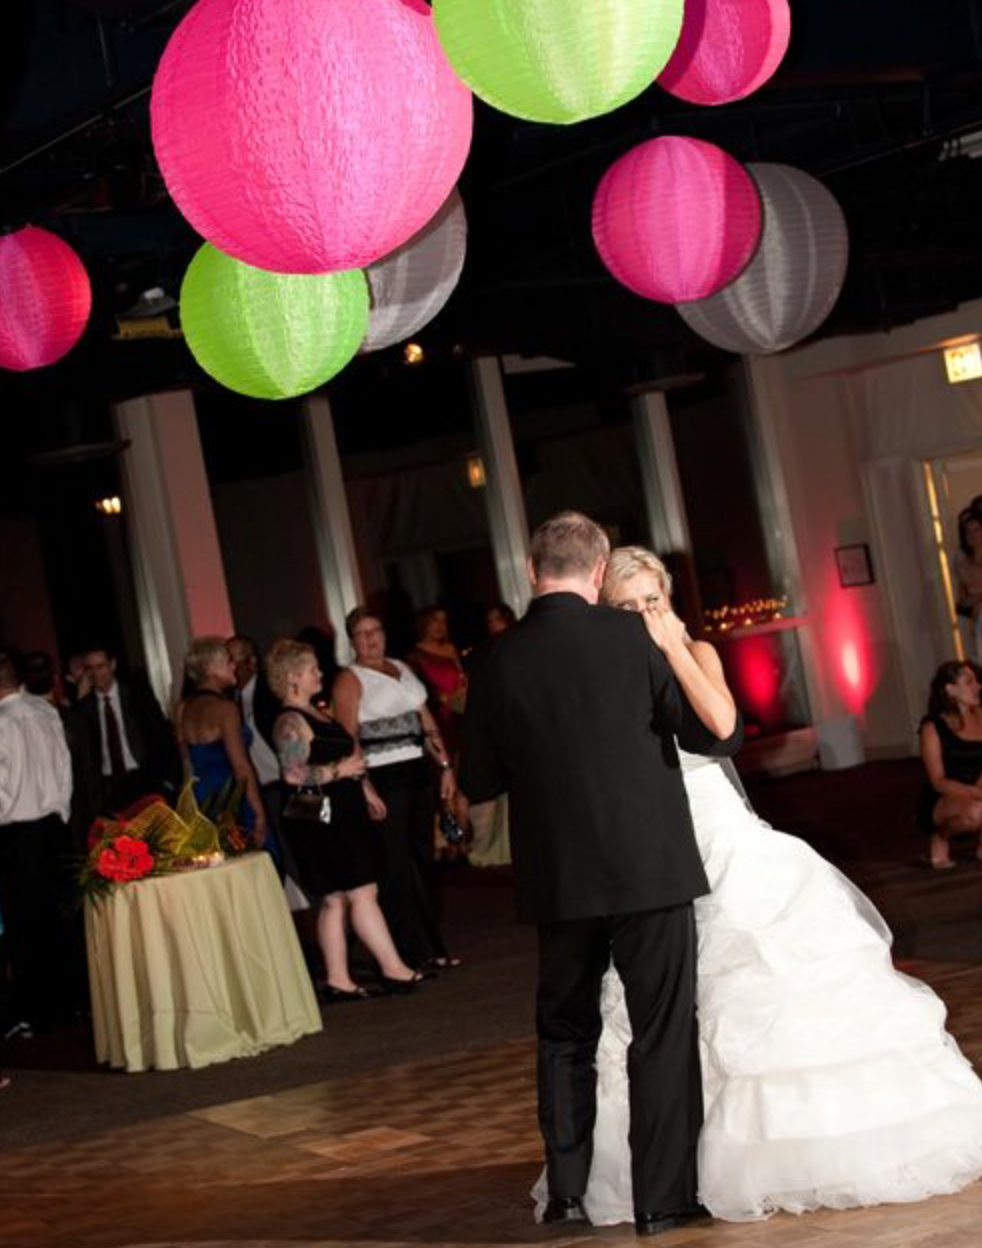 Neon lanterns give an 80's retro vibe to this wedding!